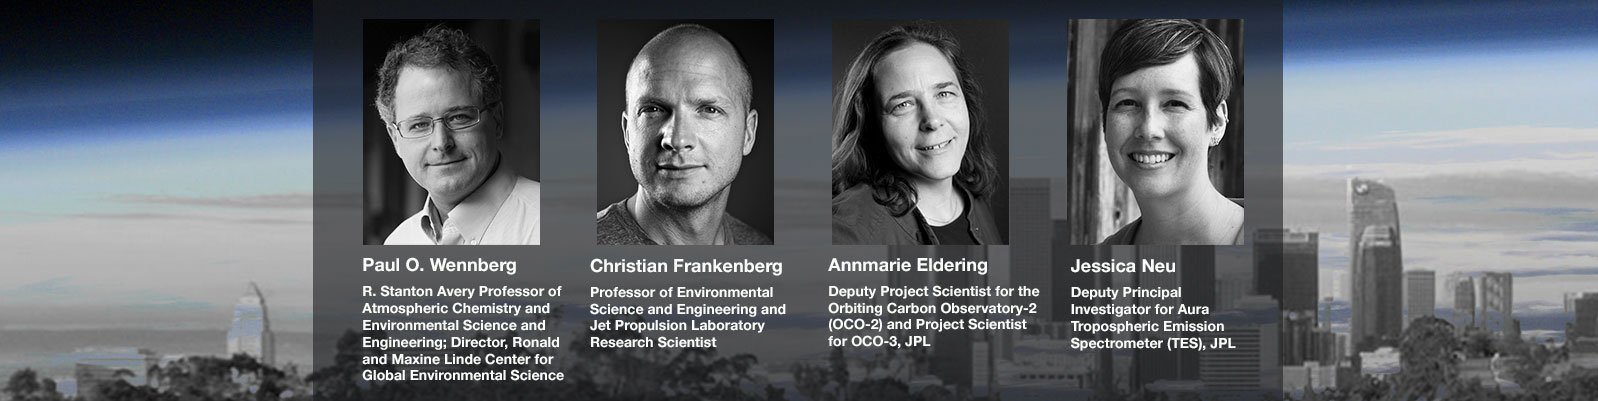 Webinar panelists and moderator headshots on a NASA image of Earth's atmosphere from space overlaid with city skyline image